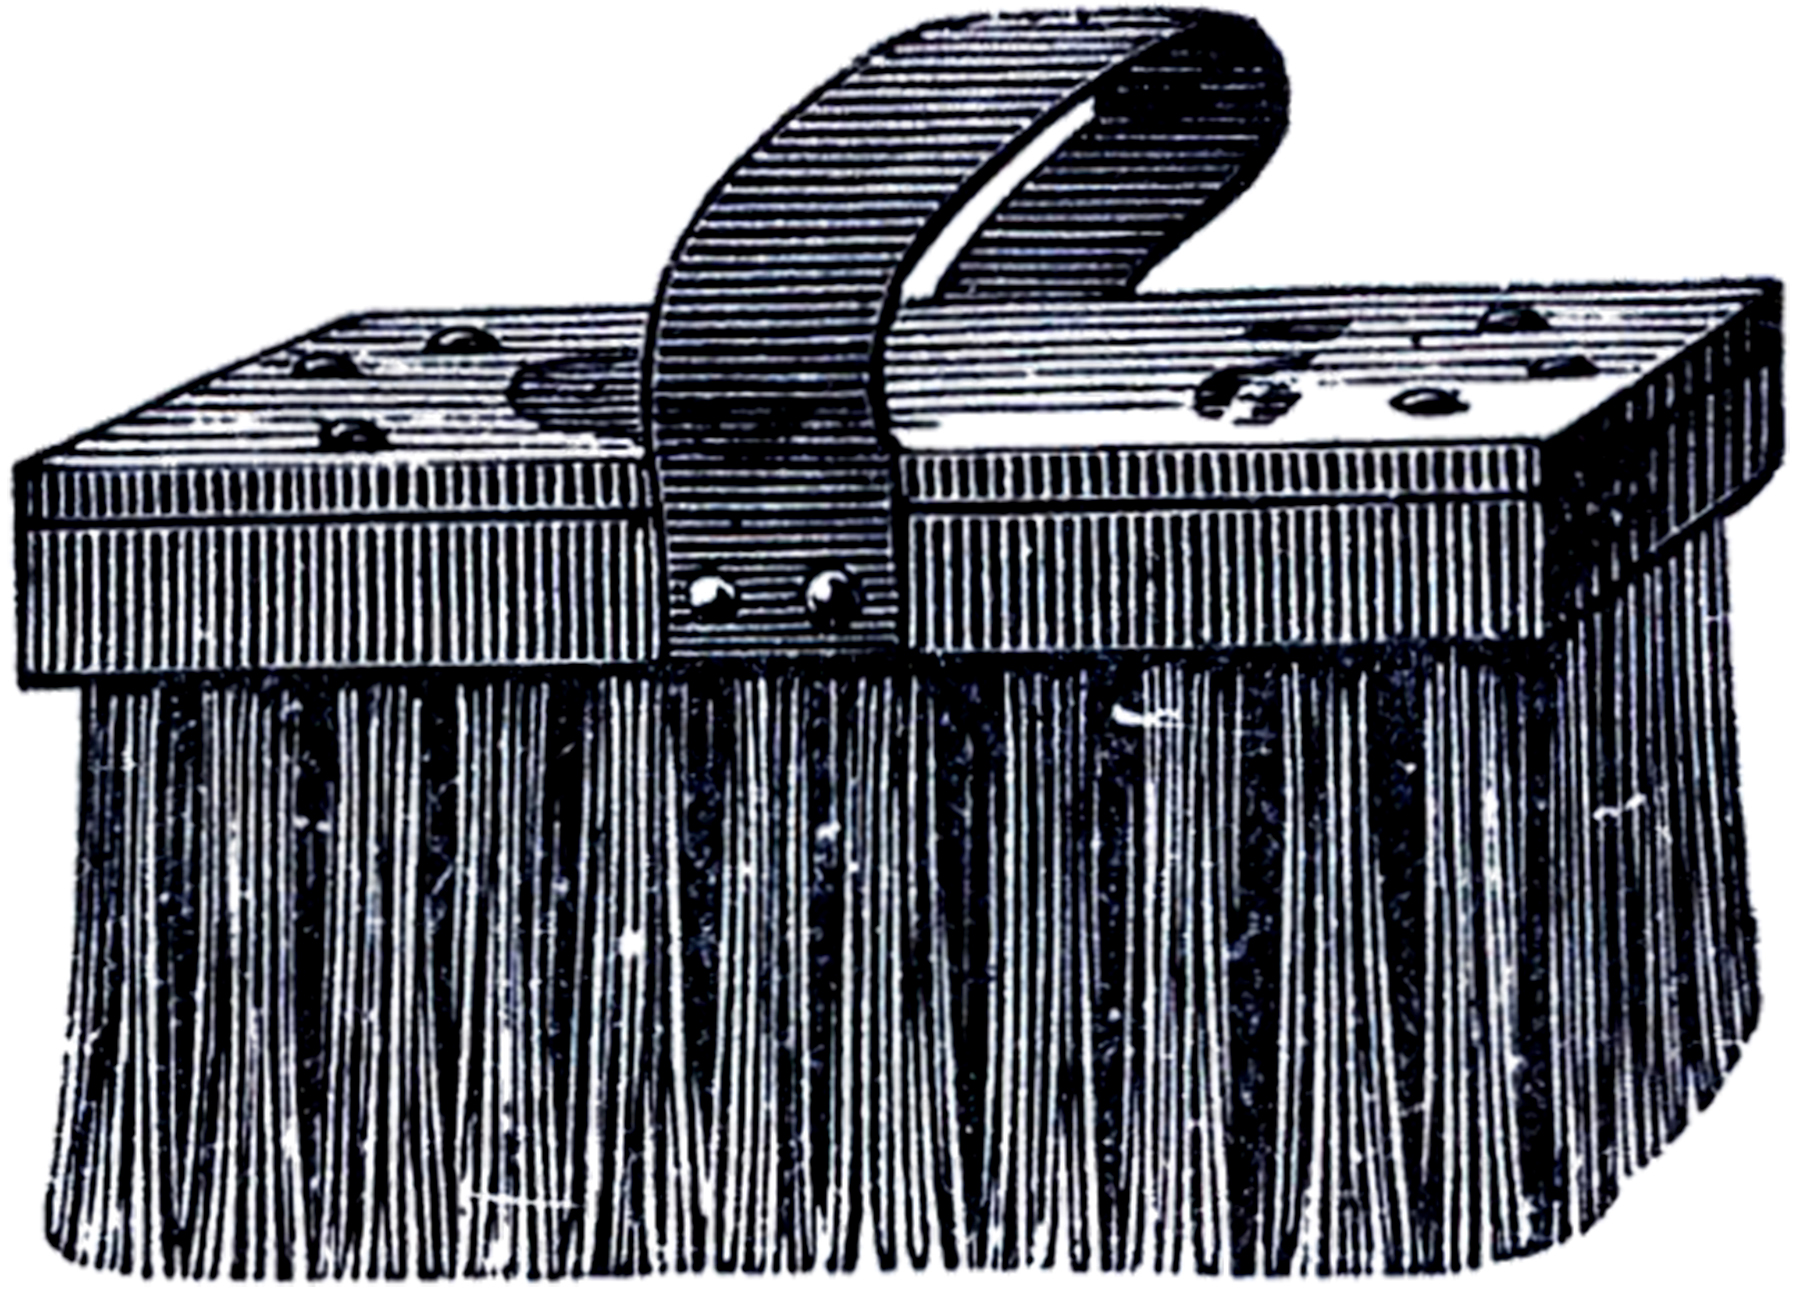 Brush clipart scrub brush. Vintage clip art the